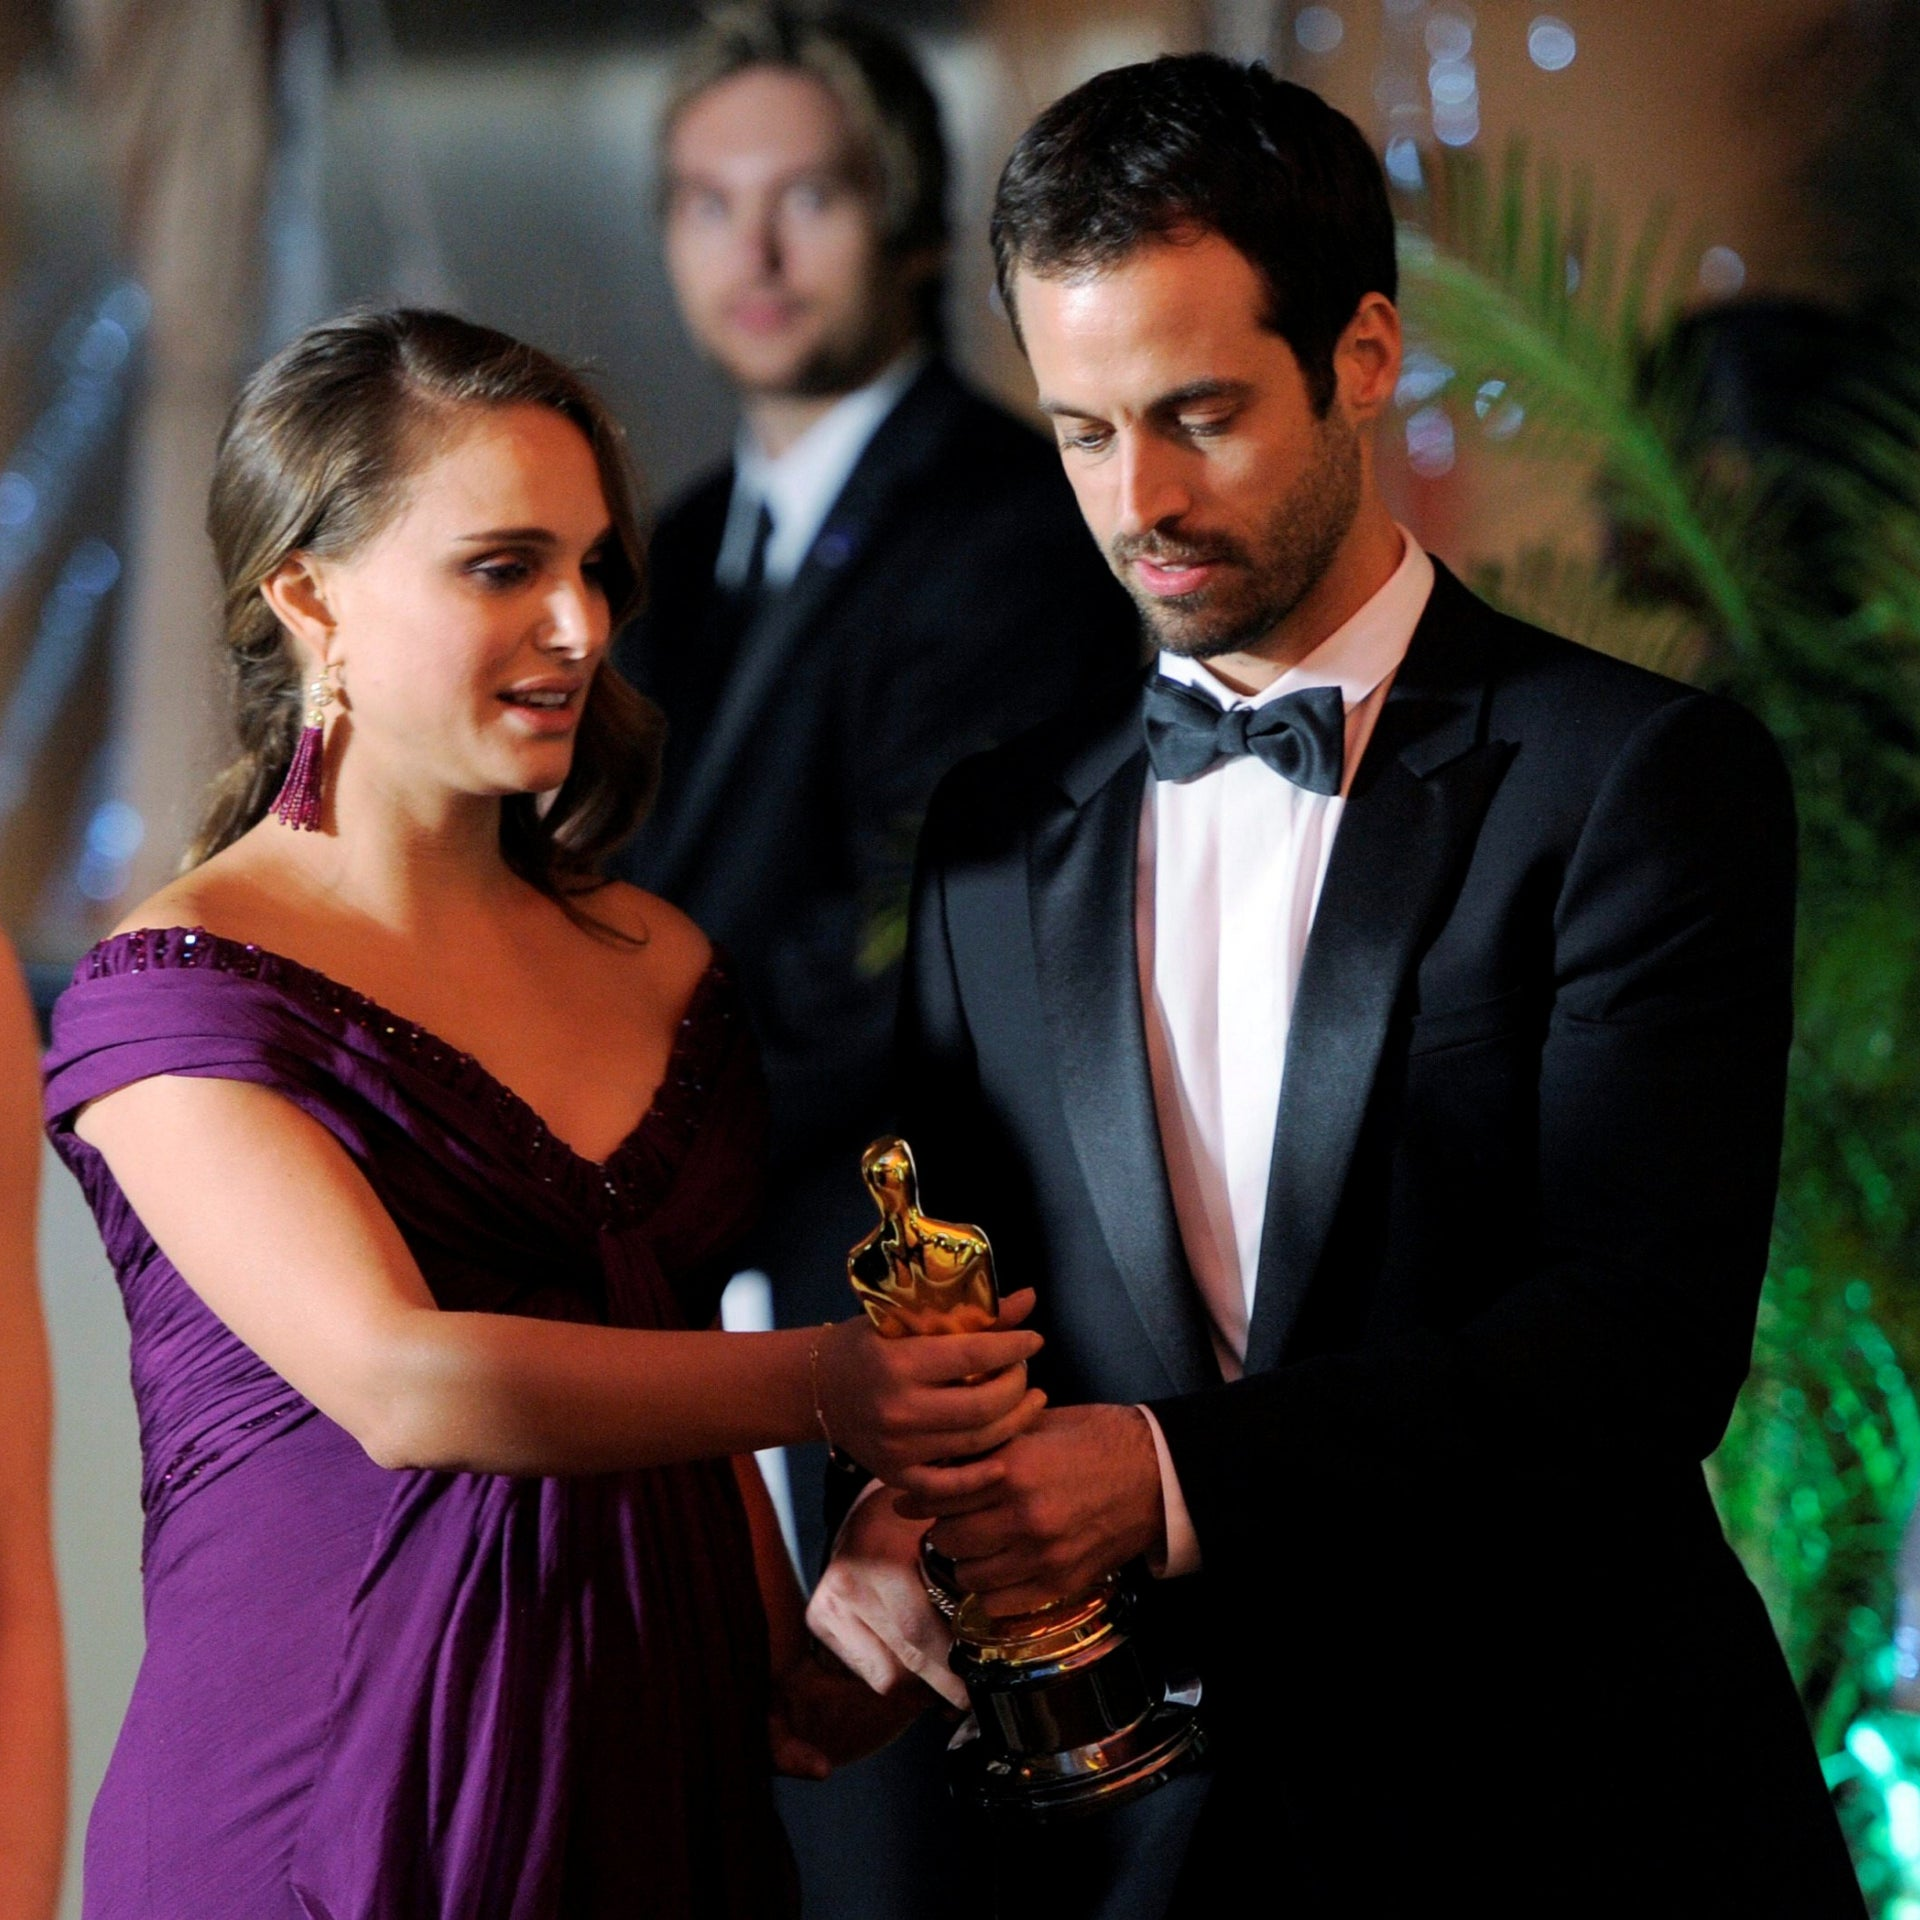 Benjamin Millepied and Natalie Portman attend the Governors Ball following the 83rd Academy Awards on Sunday, Feb. 27, 2011.